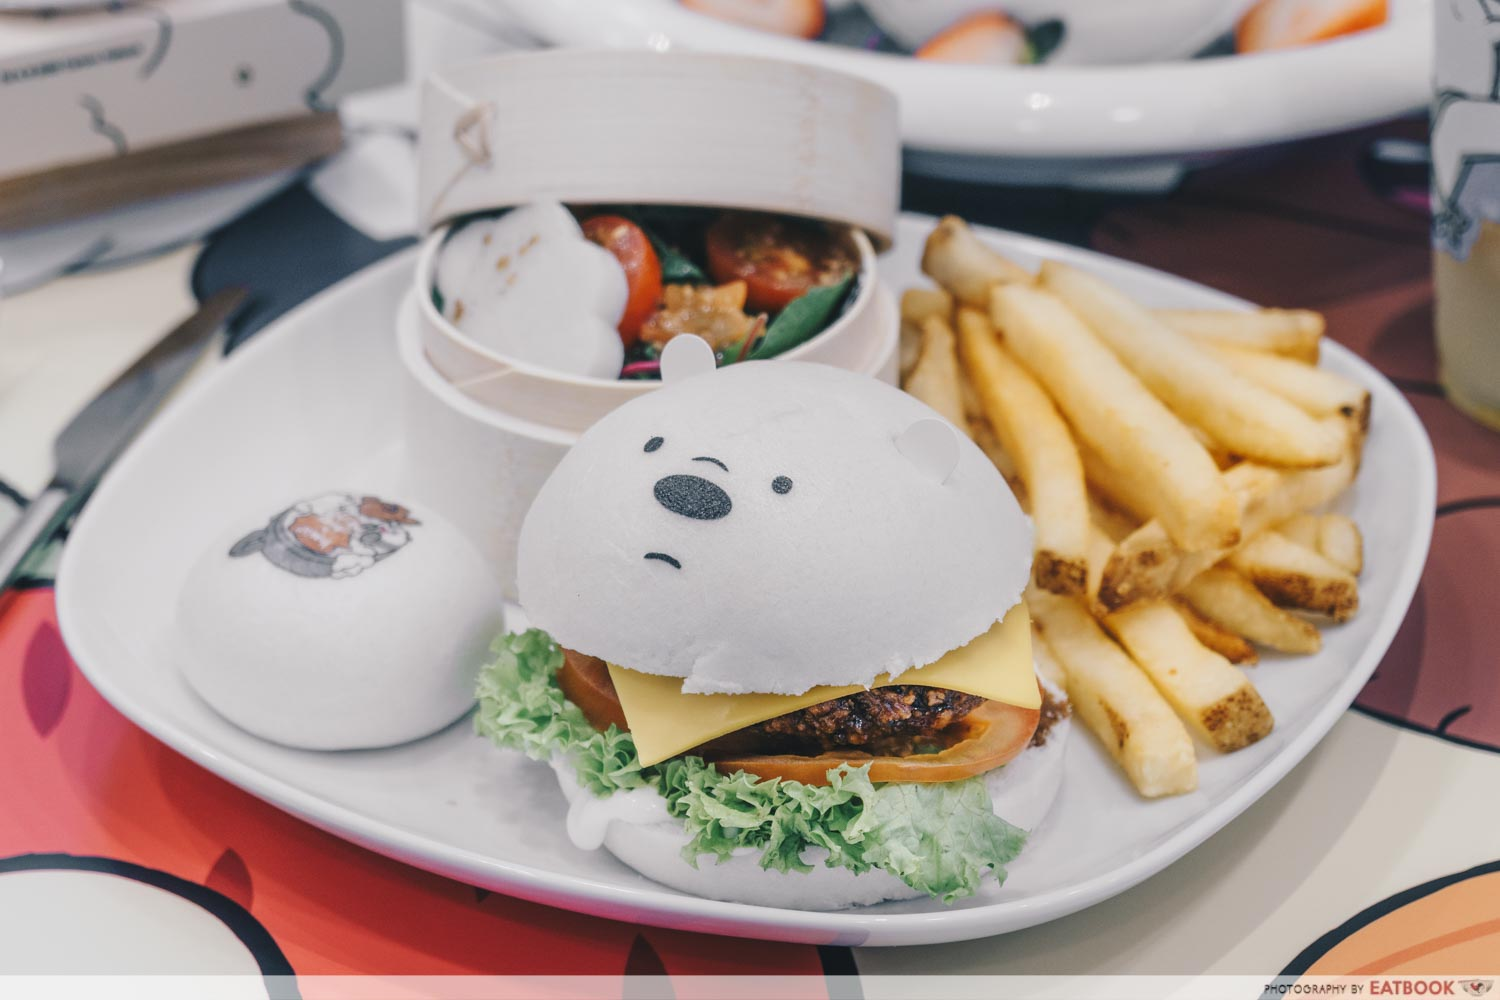 We Bare Bears Cafe - Ice Bear Terrific Teriyaki Chicken Katsu Burger